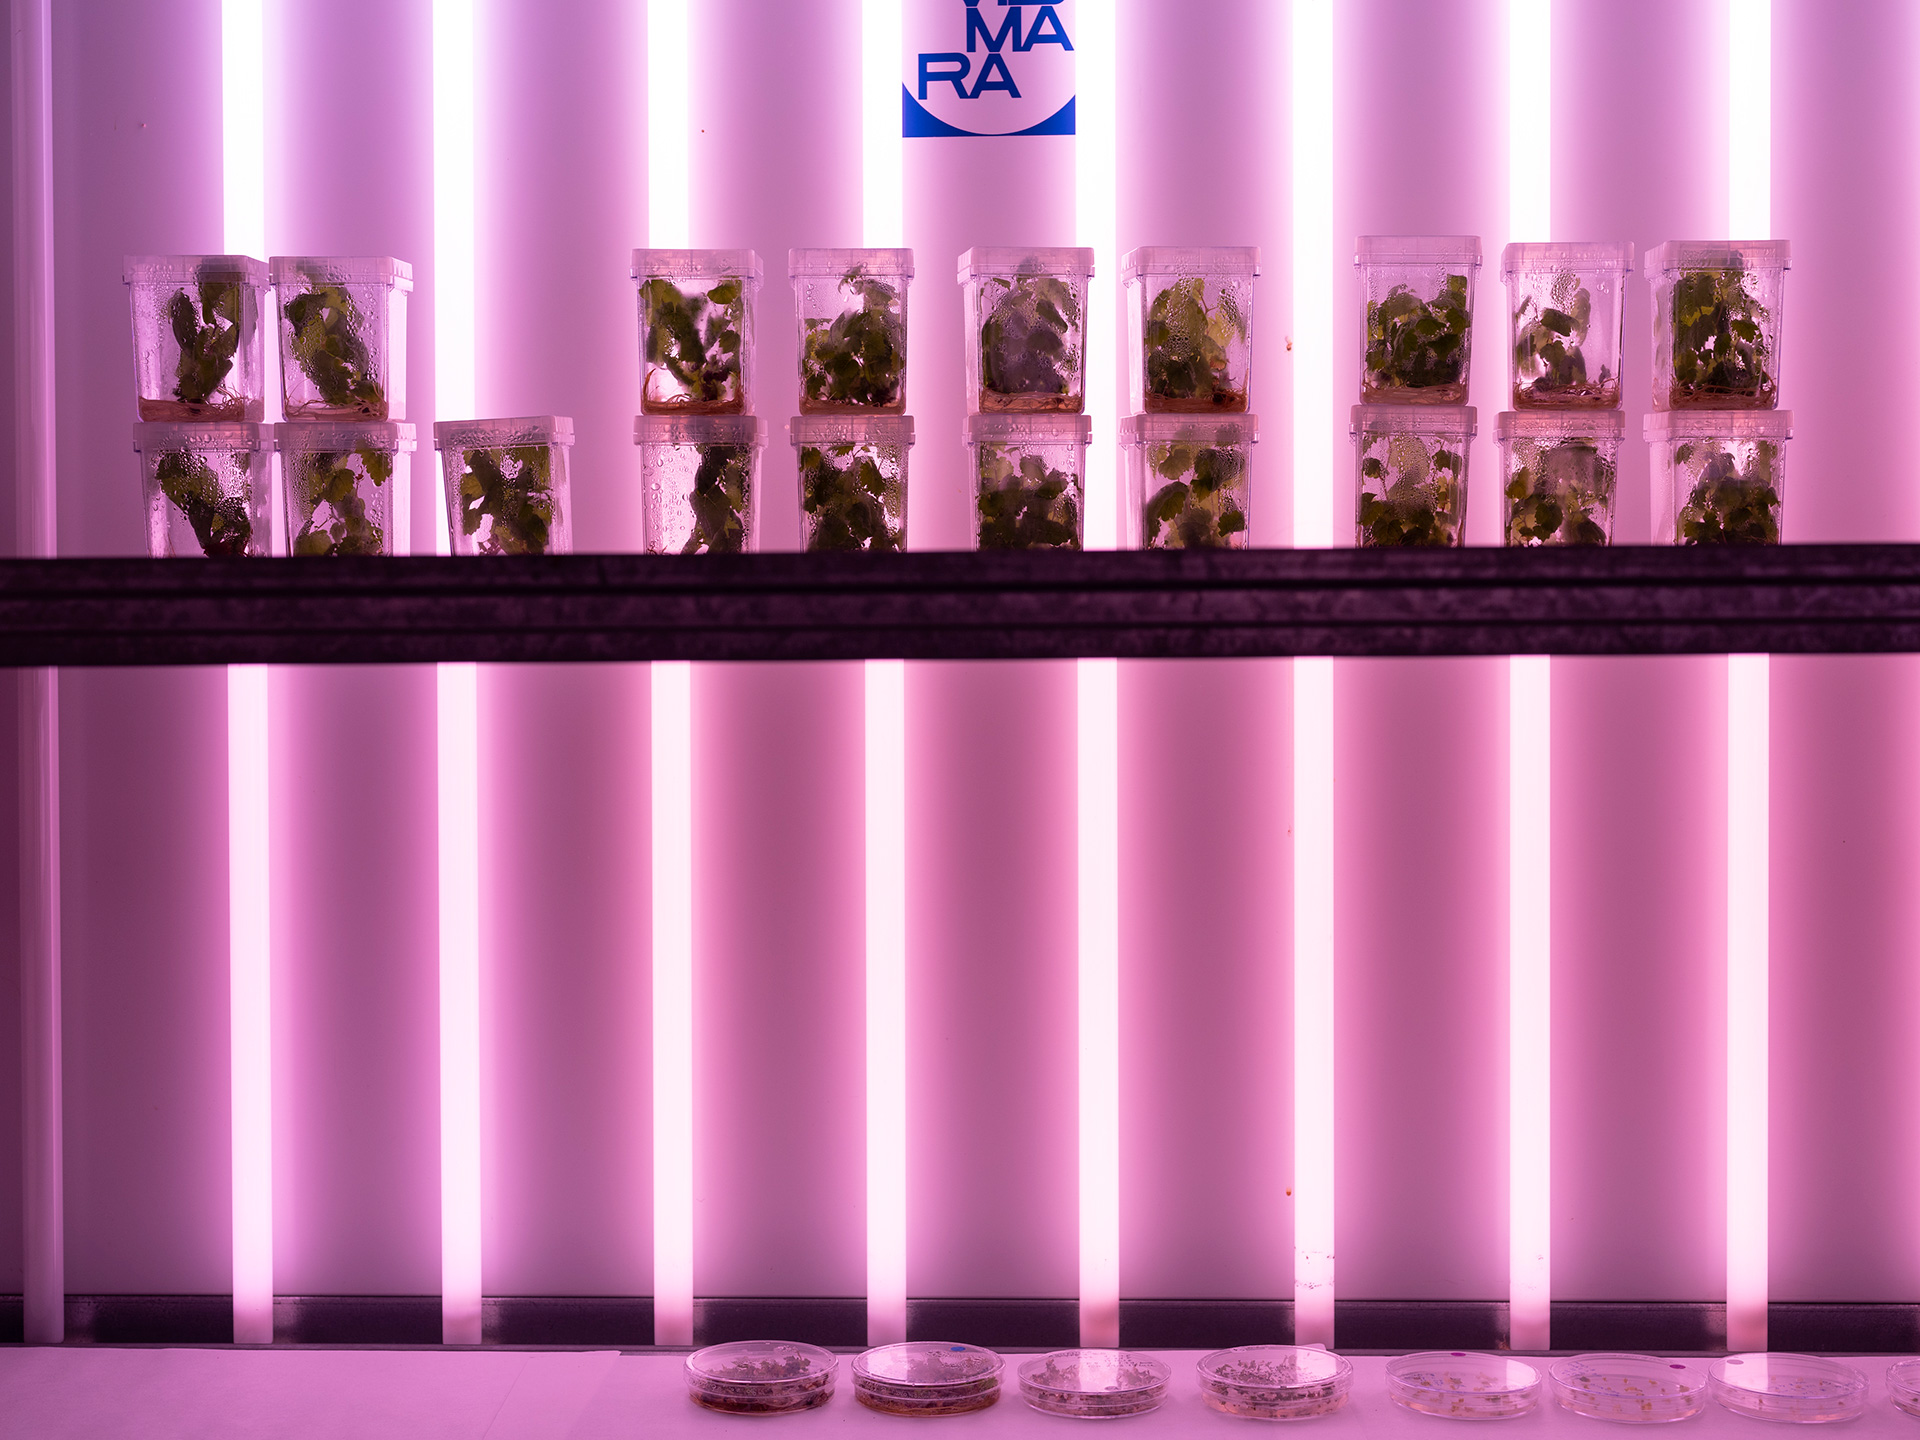 Centro Ricerche Metapontum Agrobios – ALSIA, plants and plant tissues grown in sterility under controlled conditions of light and temperature, Metaponto, Italy, 2019| Blind Sensorium. Il Paradosso dell'Antropocene | Armin Linke | STIRworld